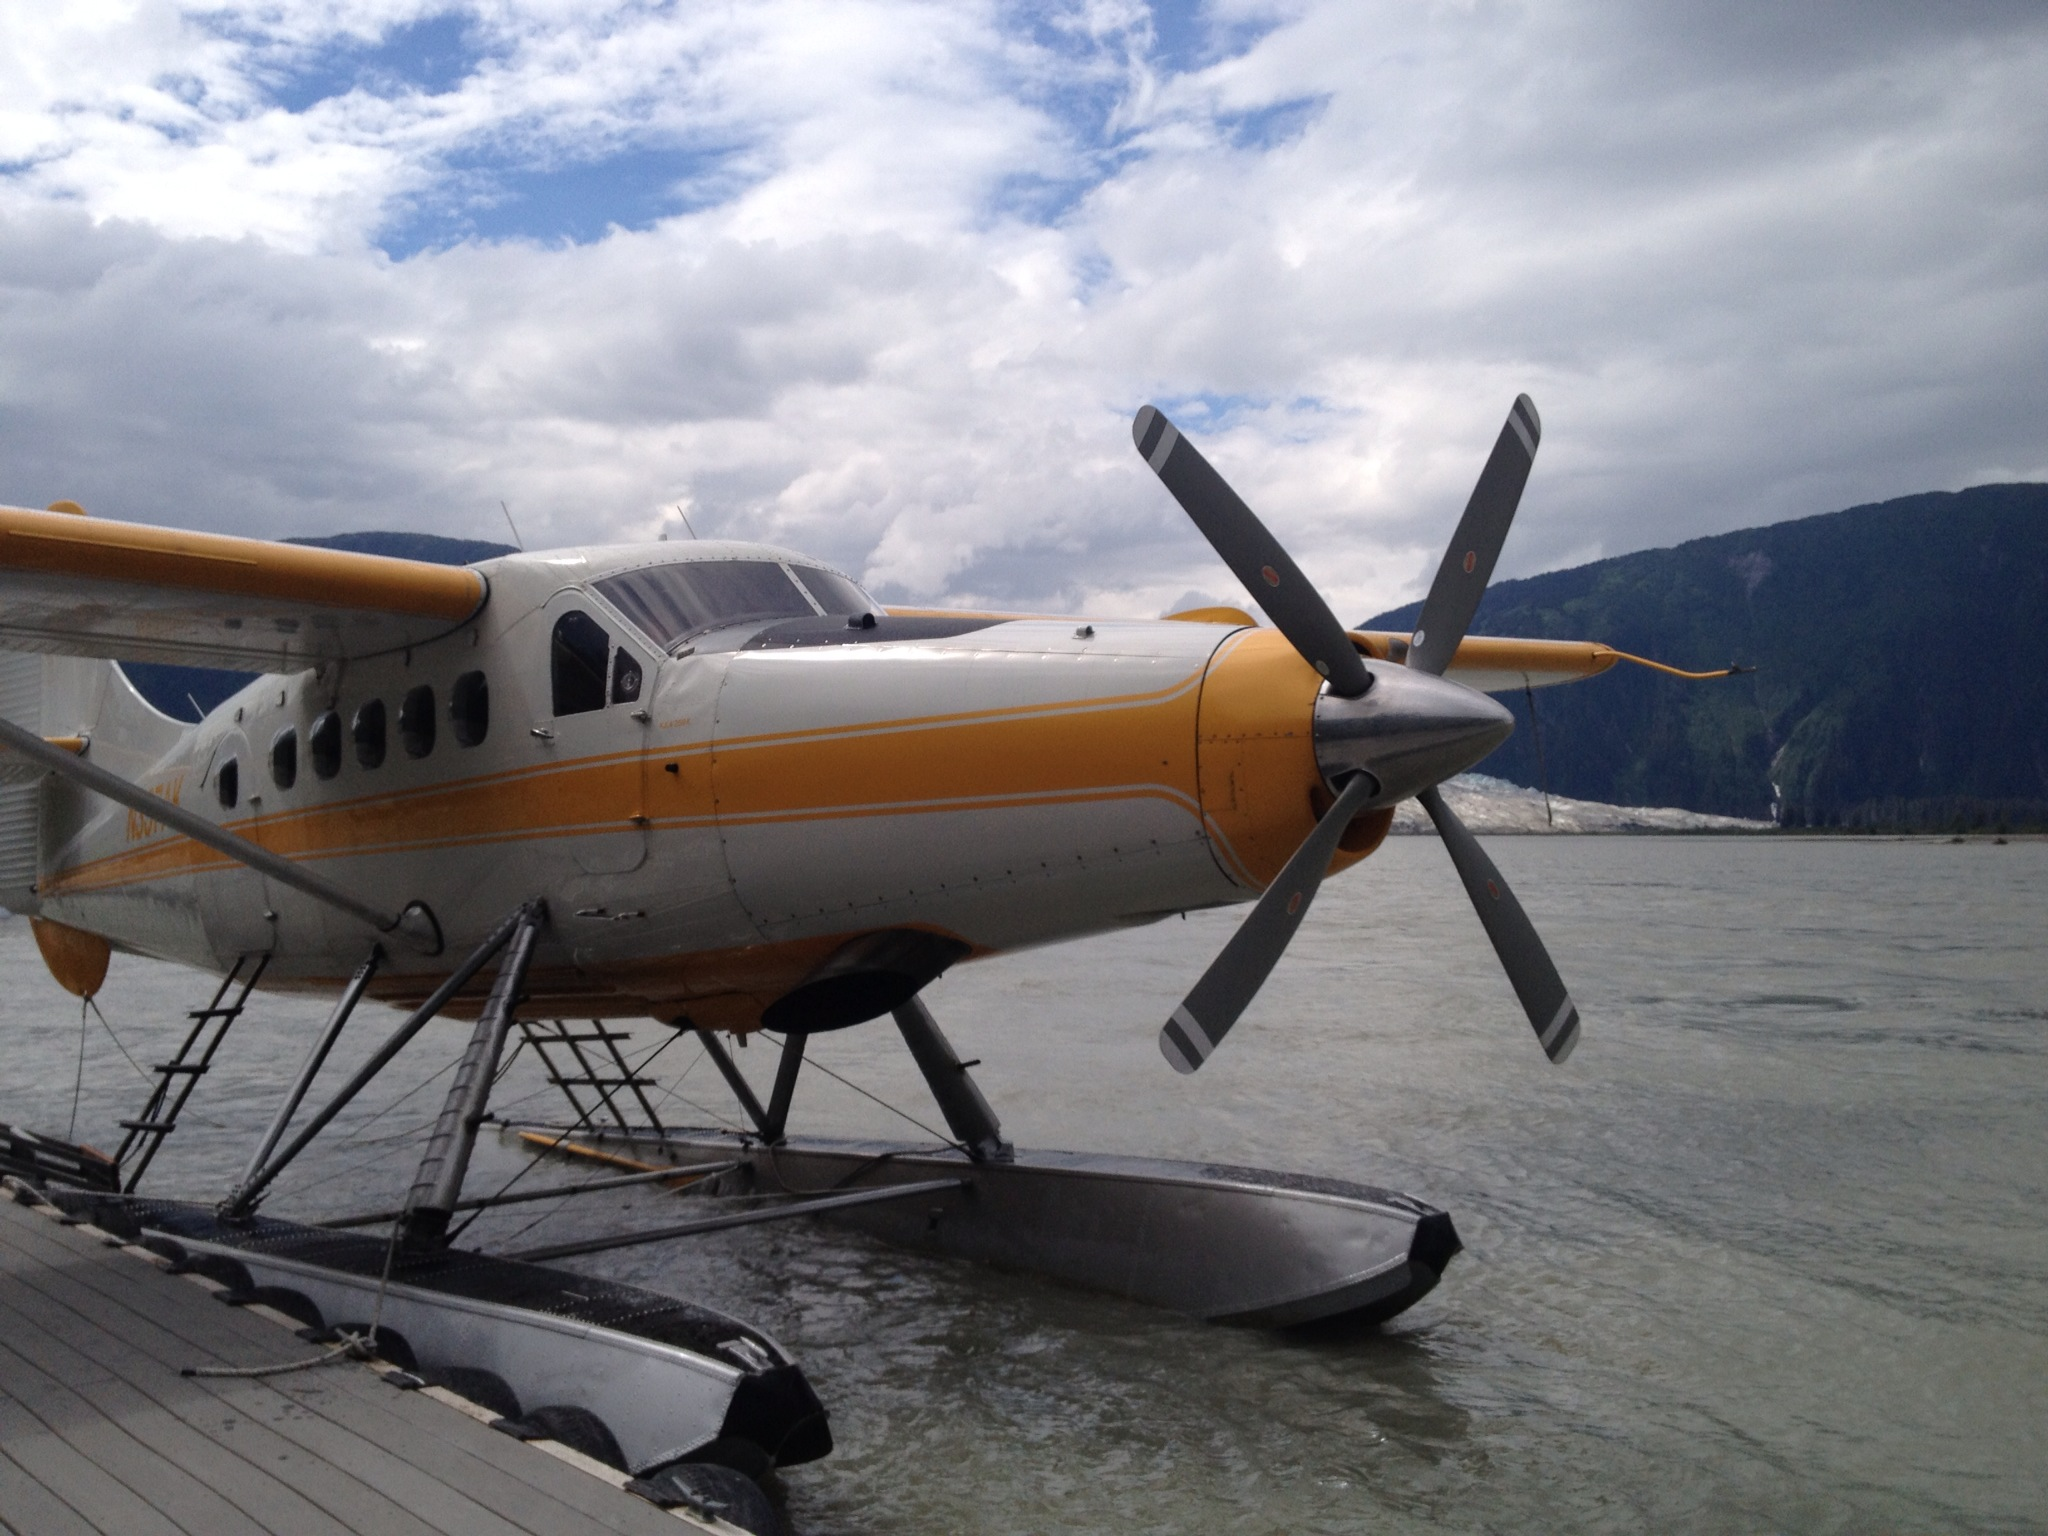 A seaplane trip out to Taku Glacier Lodge was one of my favorite outings from Juneau.